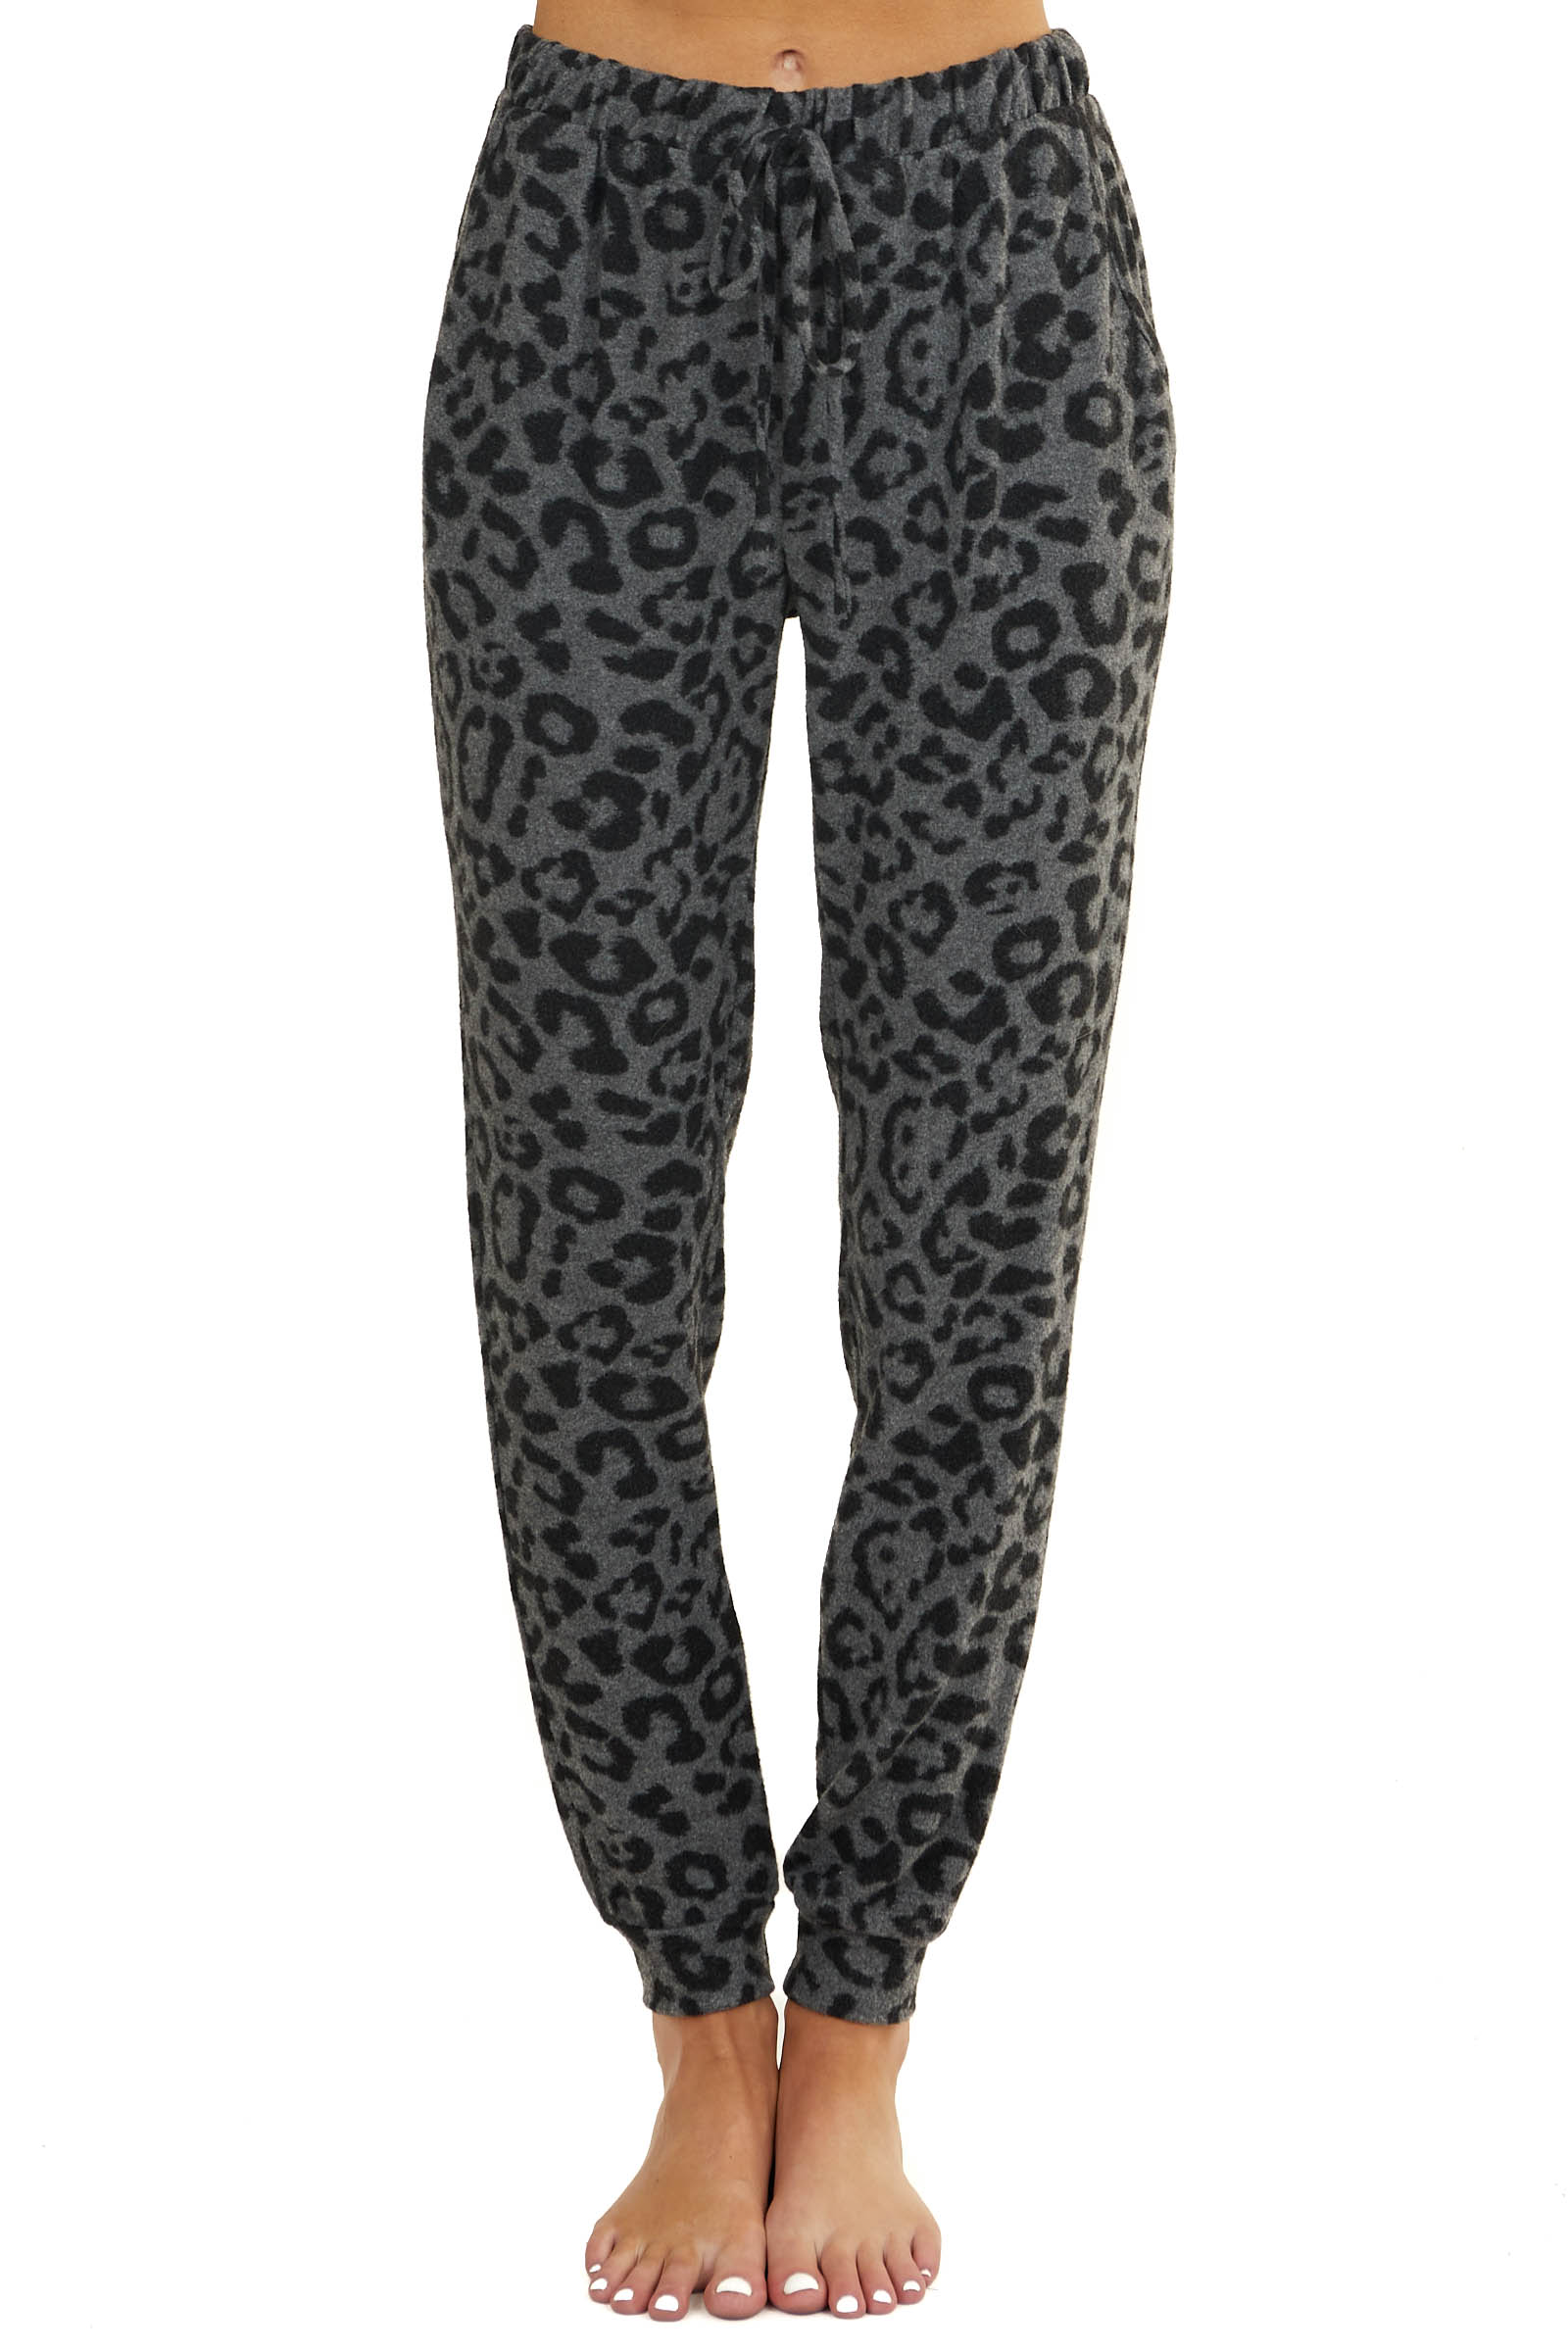 Charcoal and Grey Leopard Print Super Soft Lounge Joggers